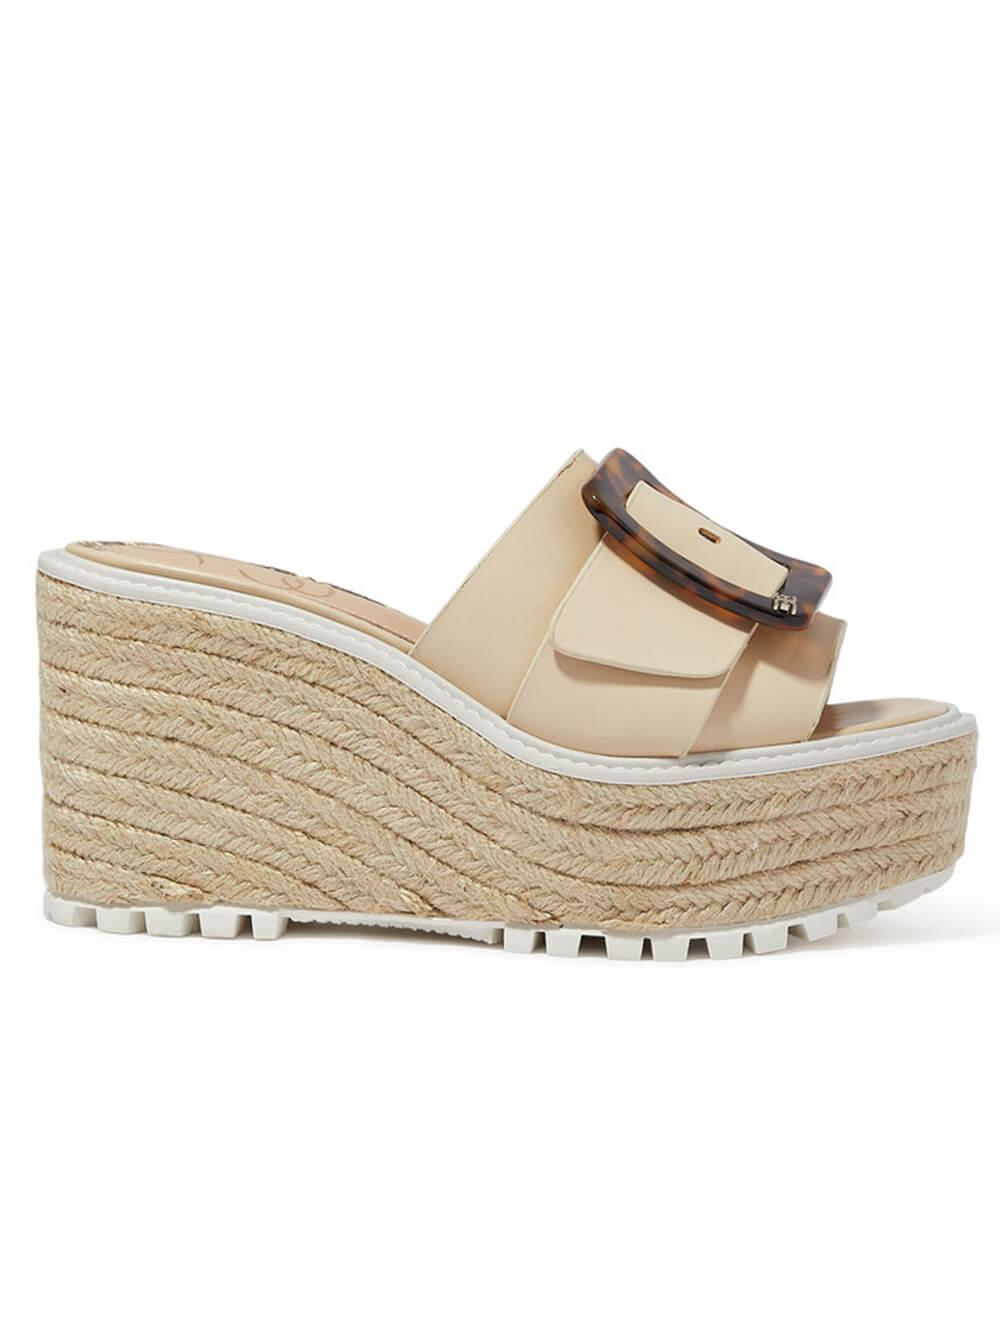 Livi Platform Wedge